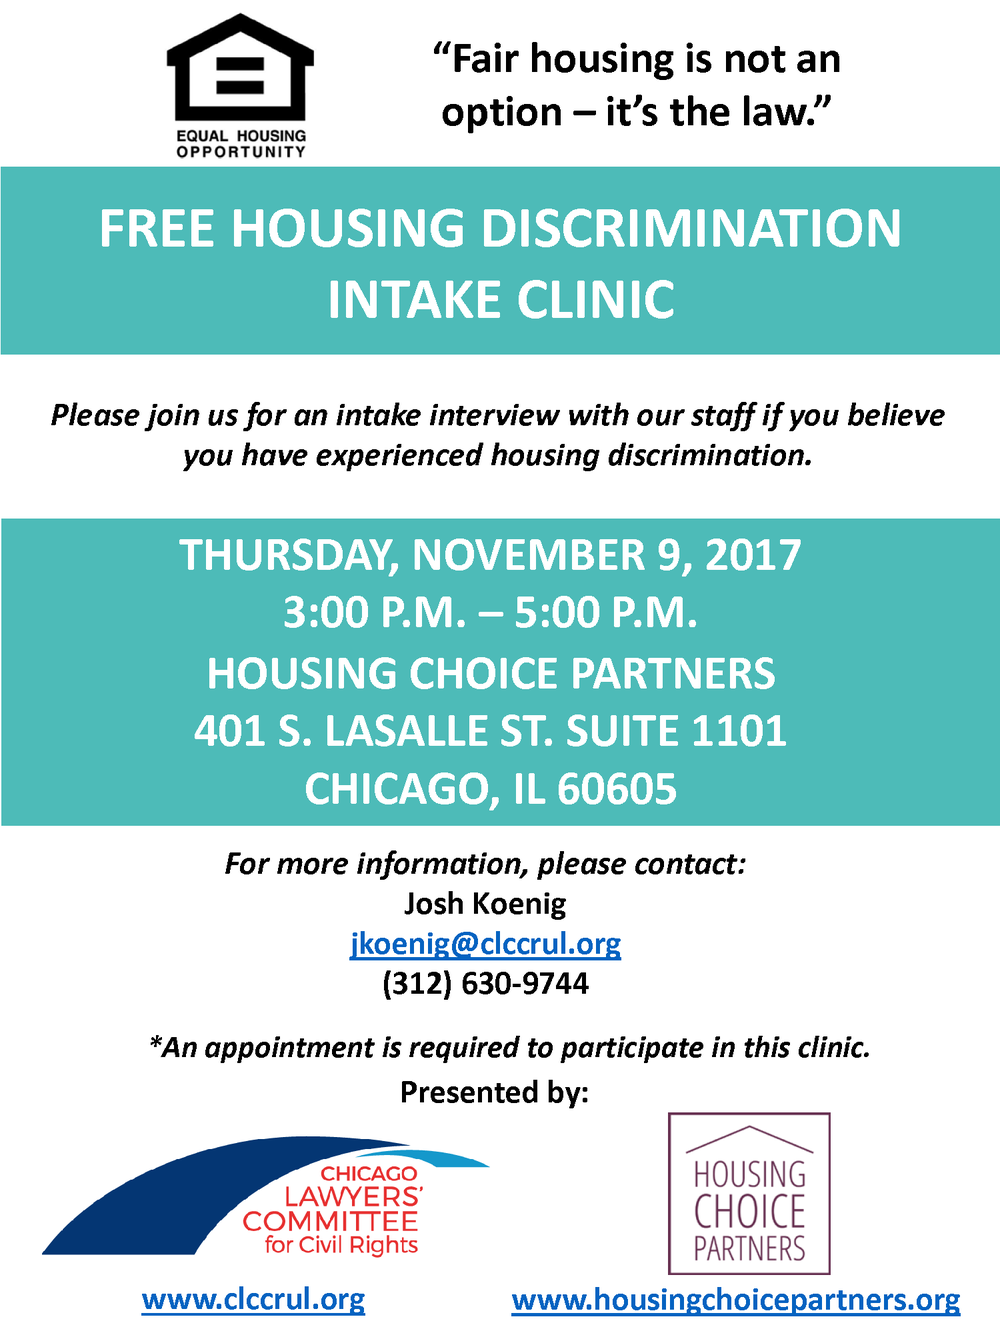 Housing Discrimination Clinic Flyer 11.3.2017.png